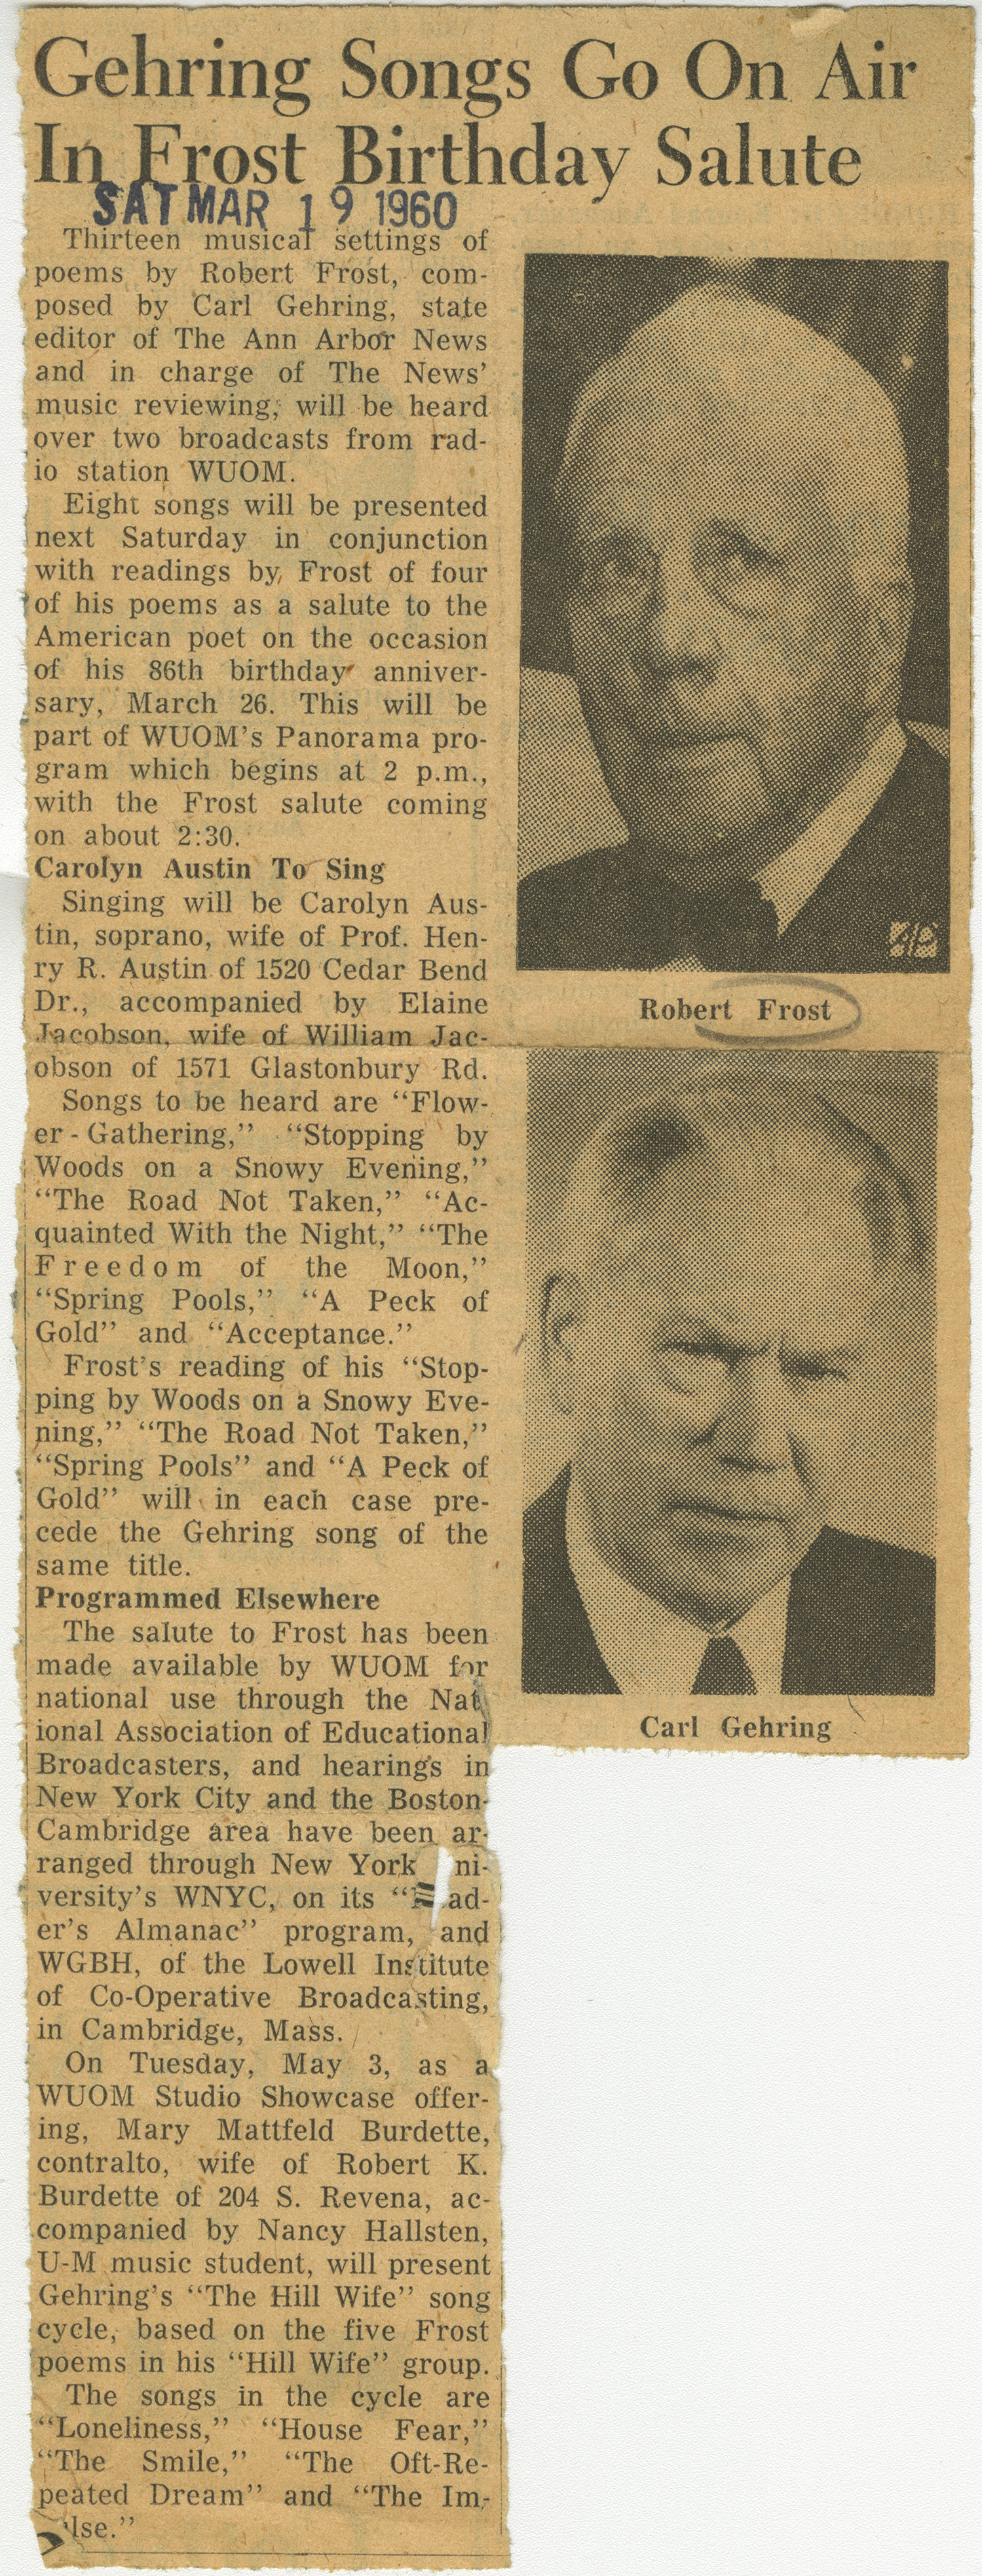 Gehring Songs Go On Air In Frost Birthday Salute image